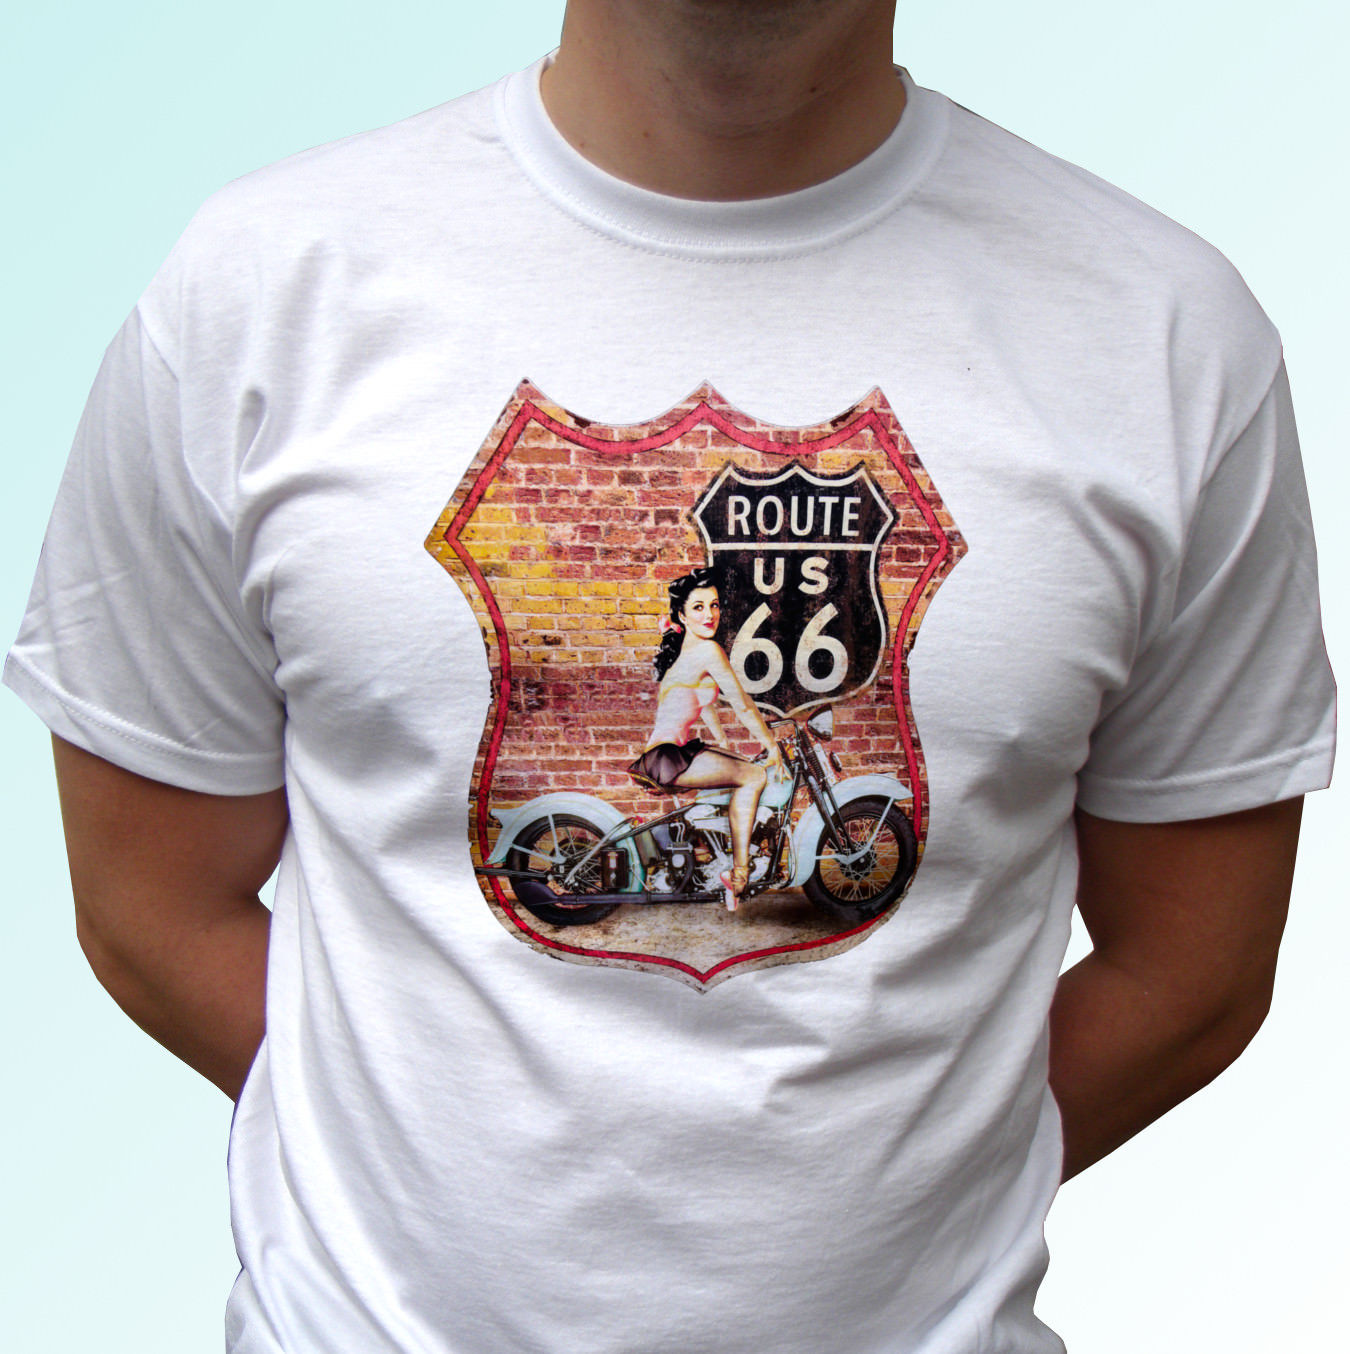 Route 66 white t shirt top USA women biker design 2 - mens womens kids & baby